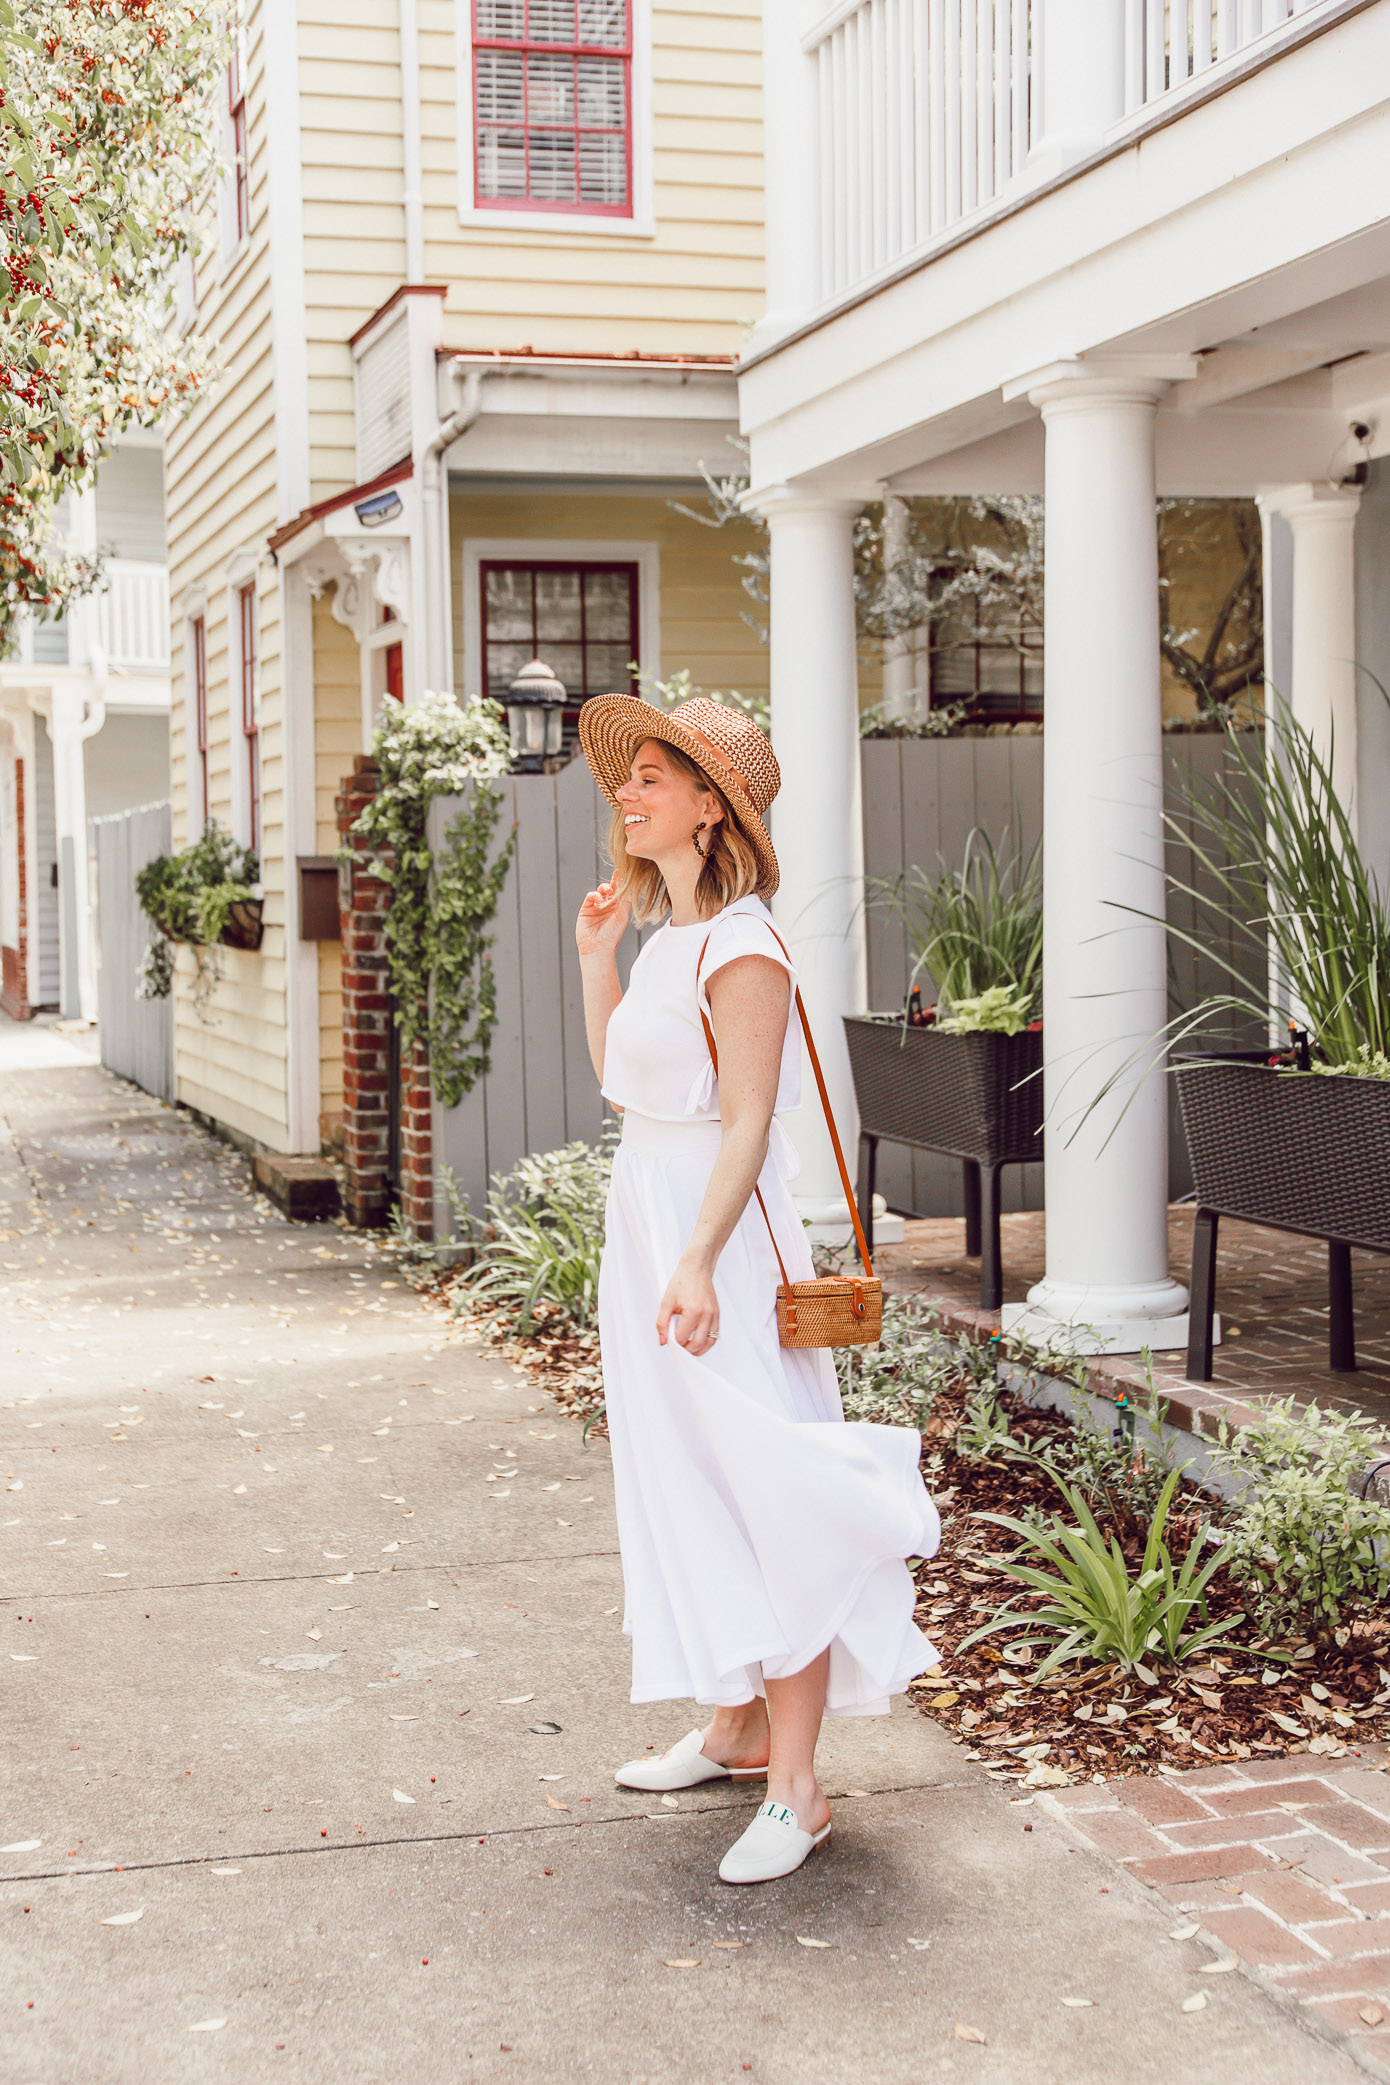 White Coordinating Set for Summer | What to Wear in Charleston when it's HOT | ft. Callahan, Brixton, Alepel | Louella Reese